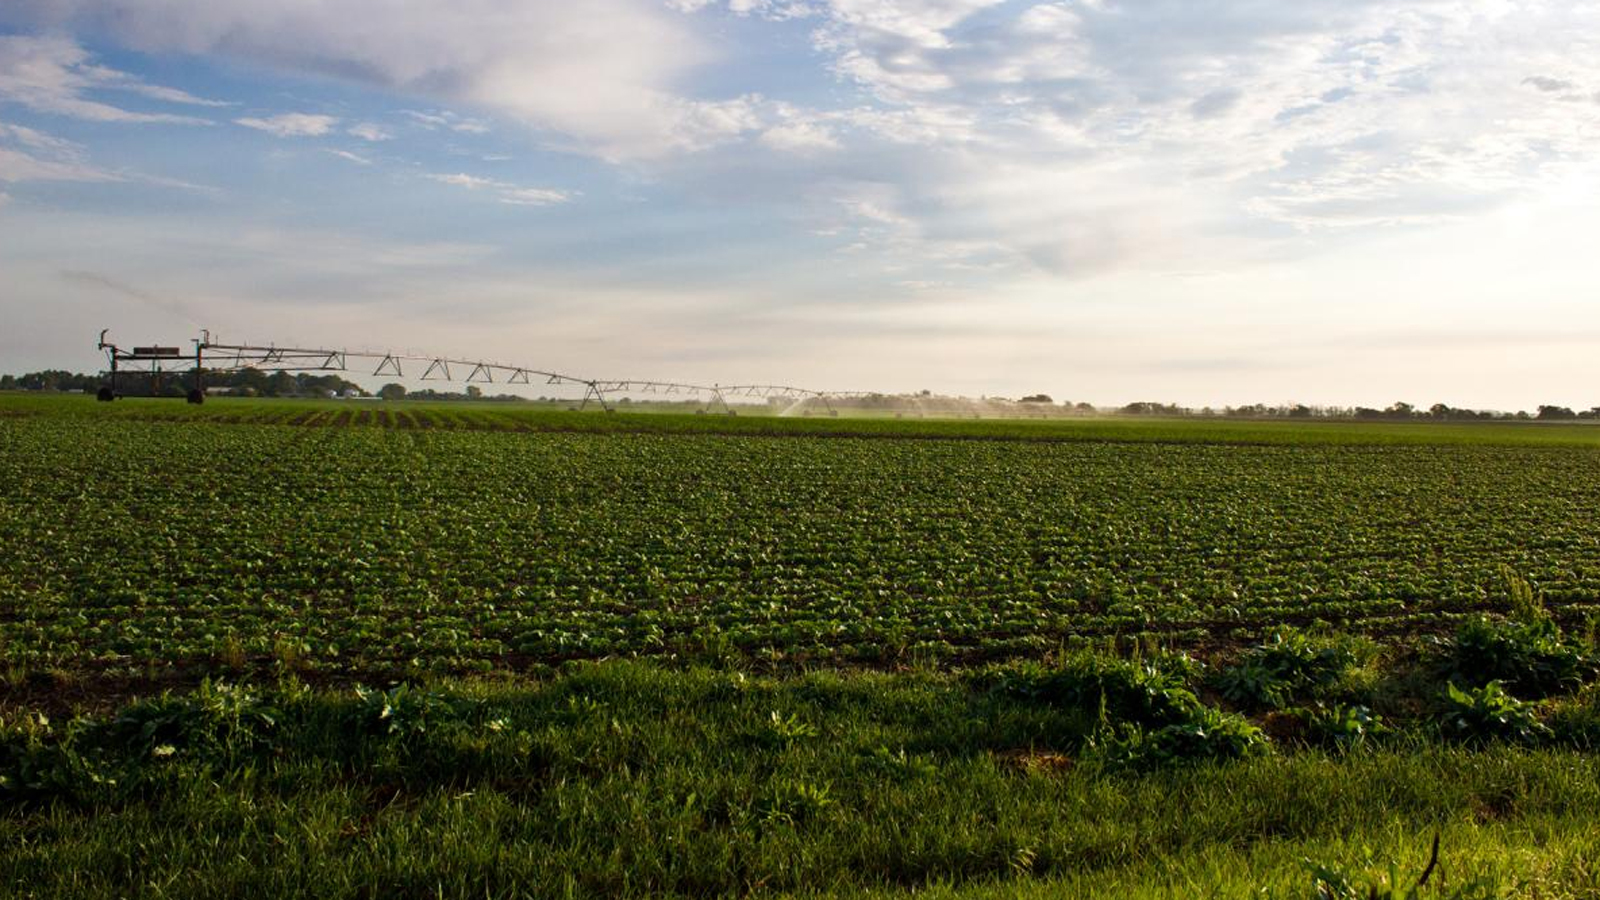 Six University of Nebraska researchers, including SNR's Mark Burbach, will join colleagues from three other institutions to develop a model for engaging communities and stakeholders to ensure adequate supplies of good-quality water both for and from agriculture.